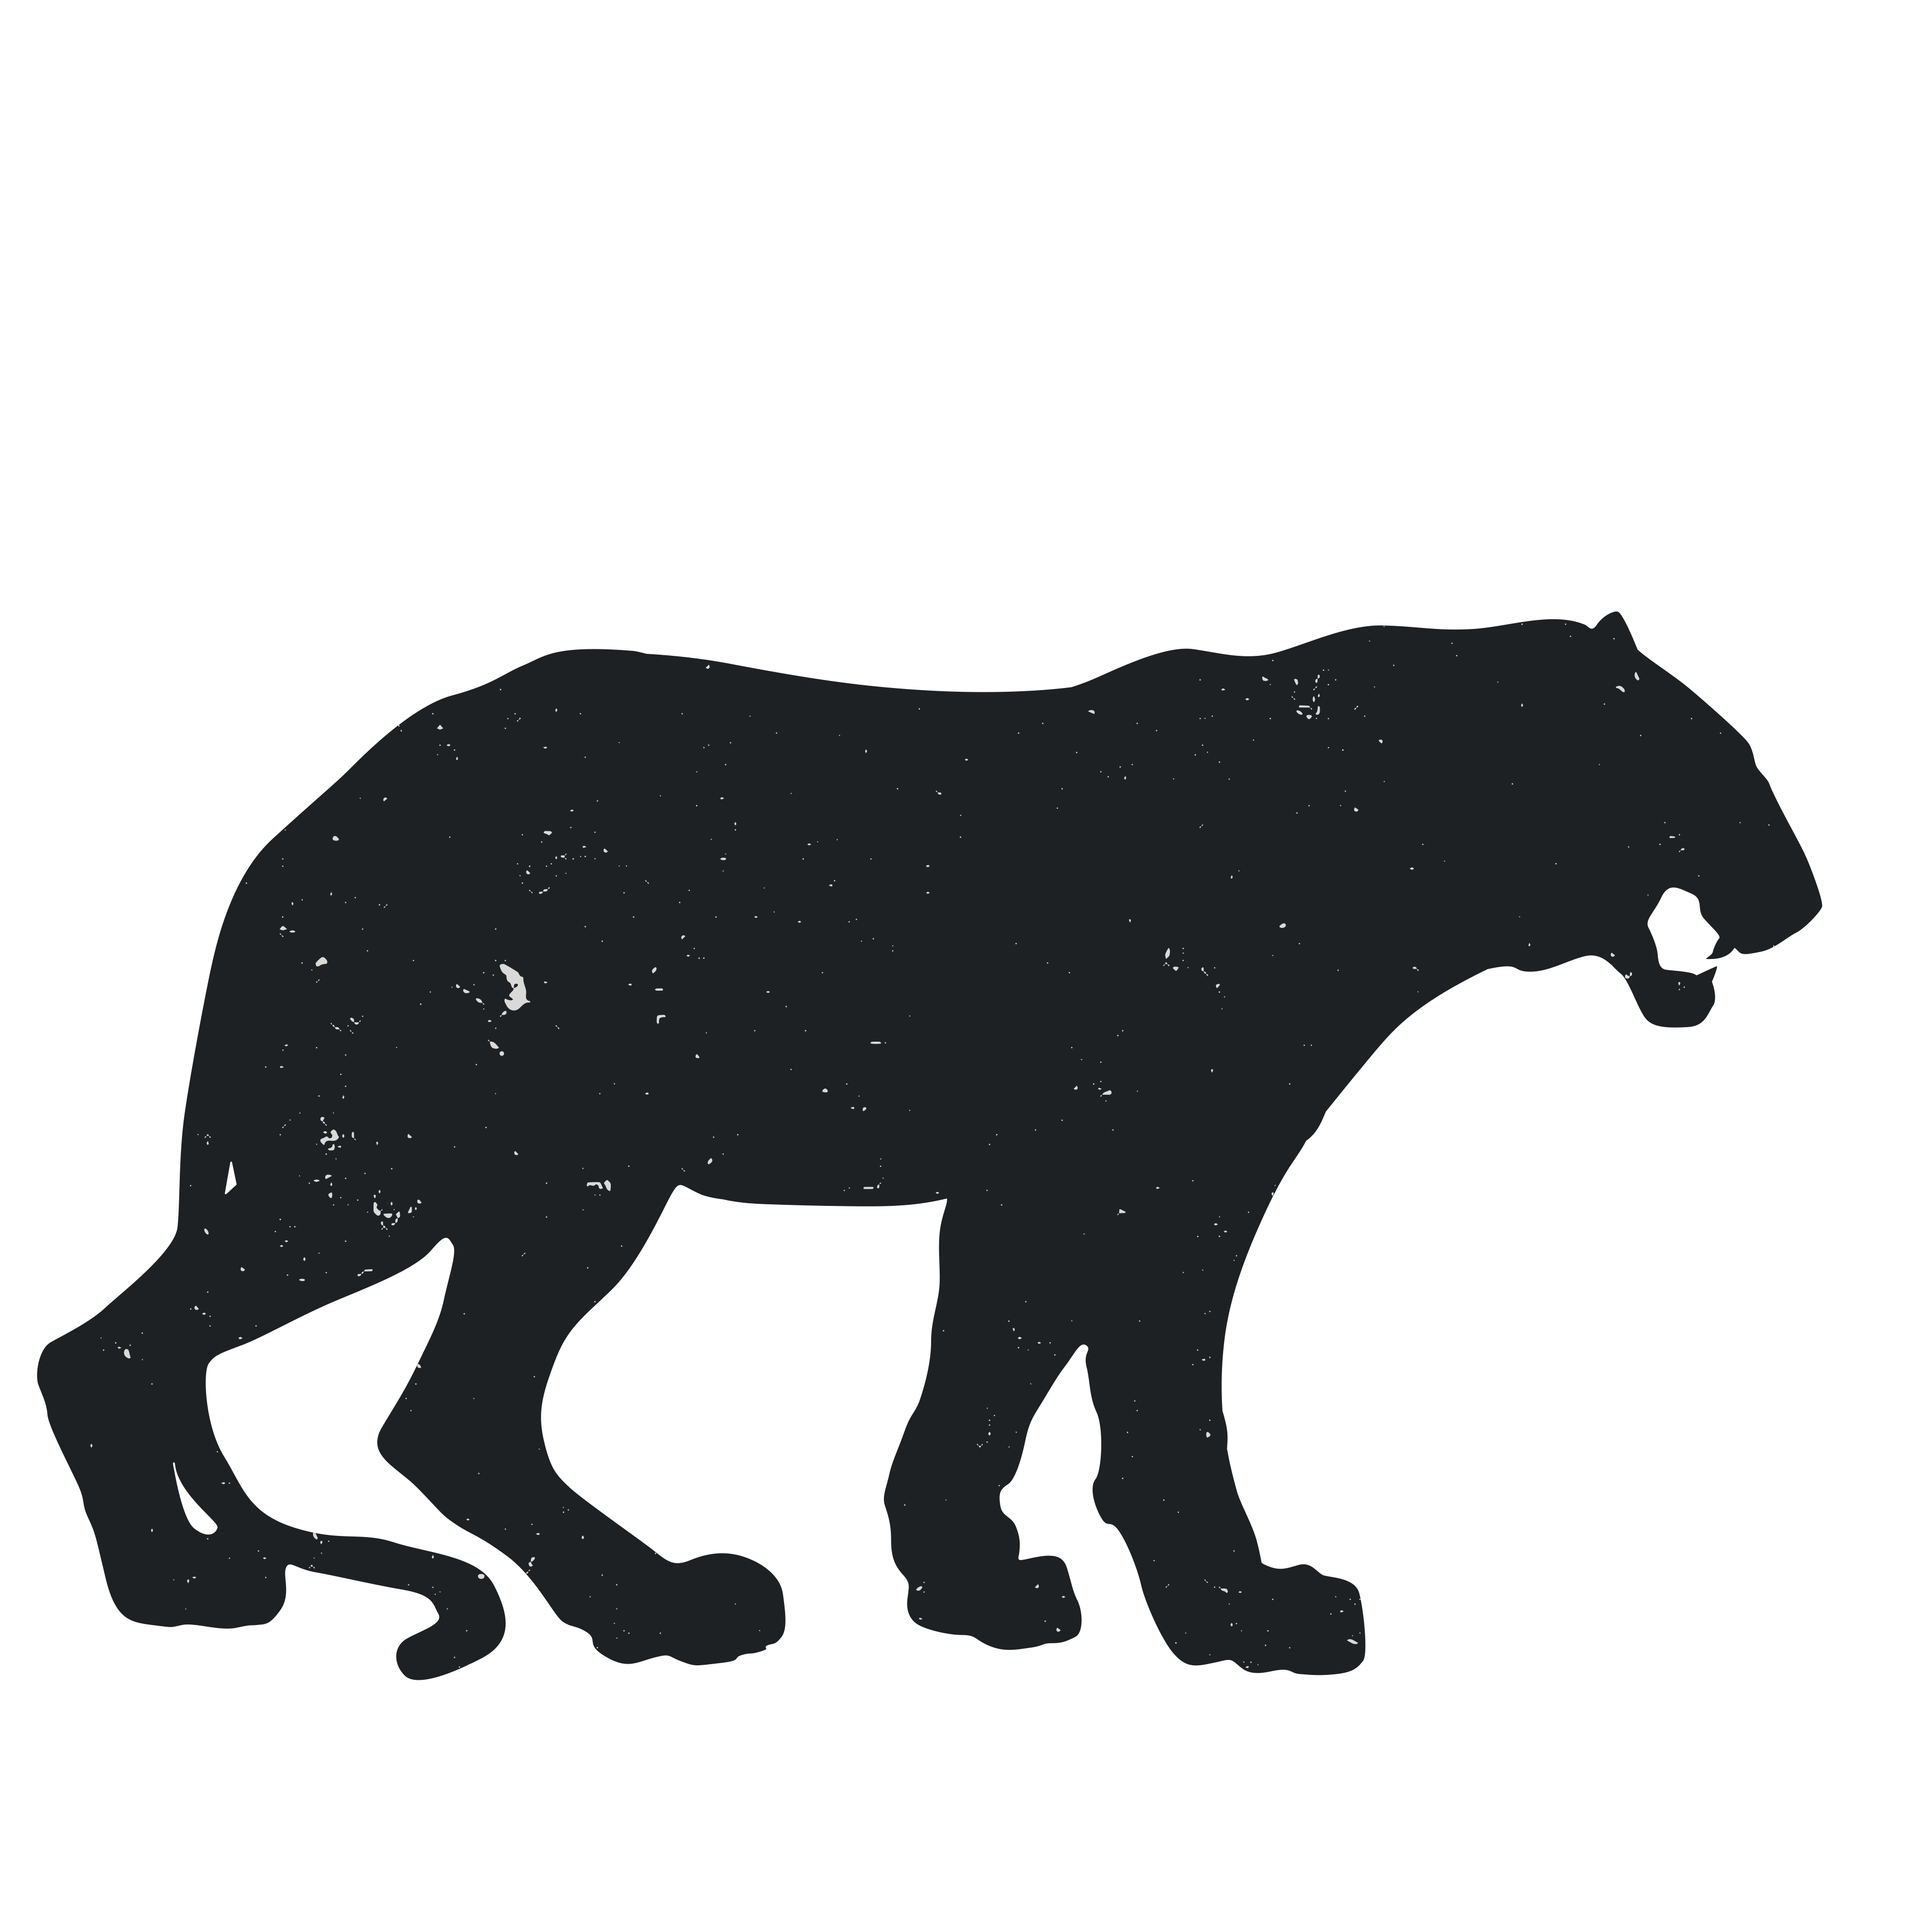 black panther clipart at getdrawings com free for personal use rh getdrawings com clip art panther paw clip art panther paw